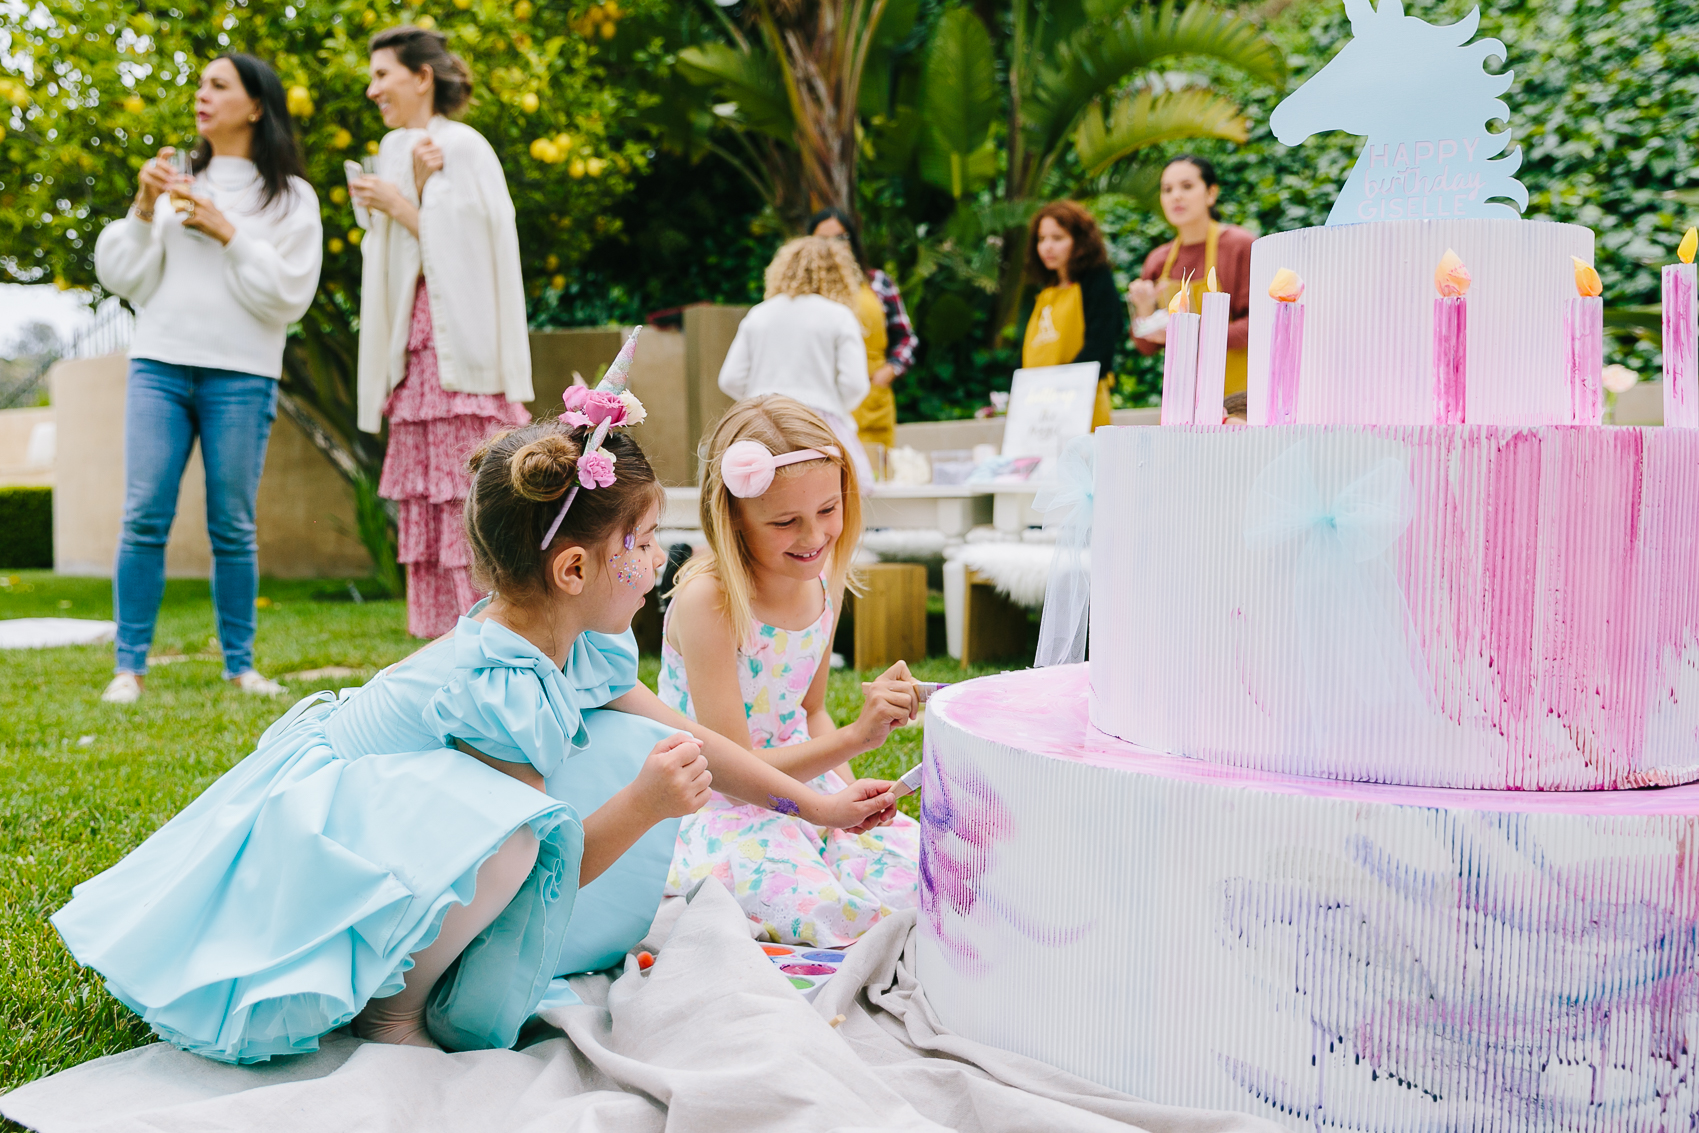 Los_Angeles_Family_Photographer_Luxury_Childrens_Party_Beverly_Hills_Unicorn_Birthday_Party-0984.jpg